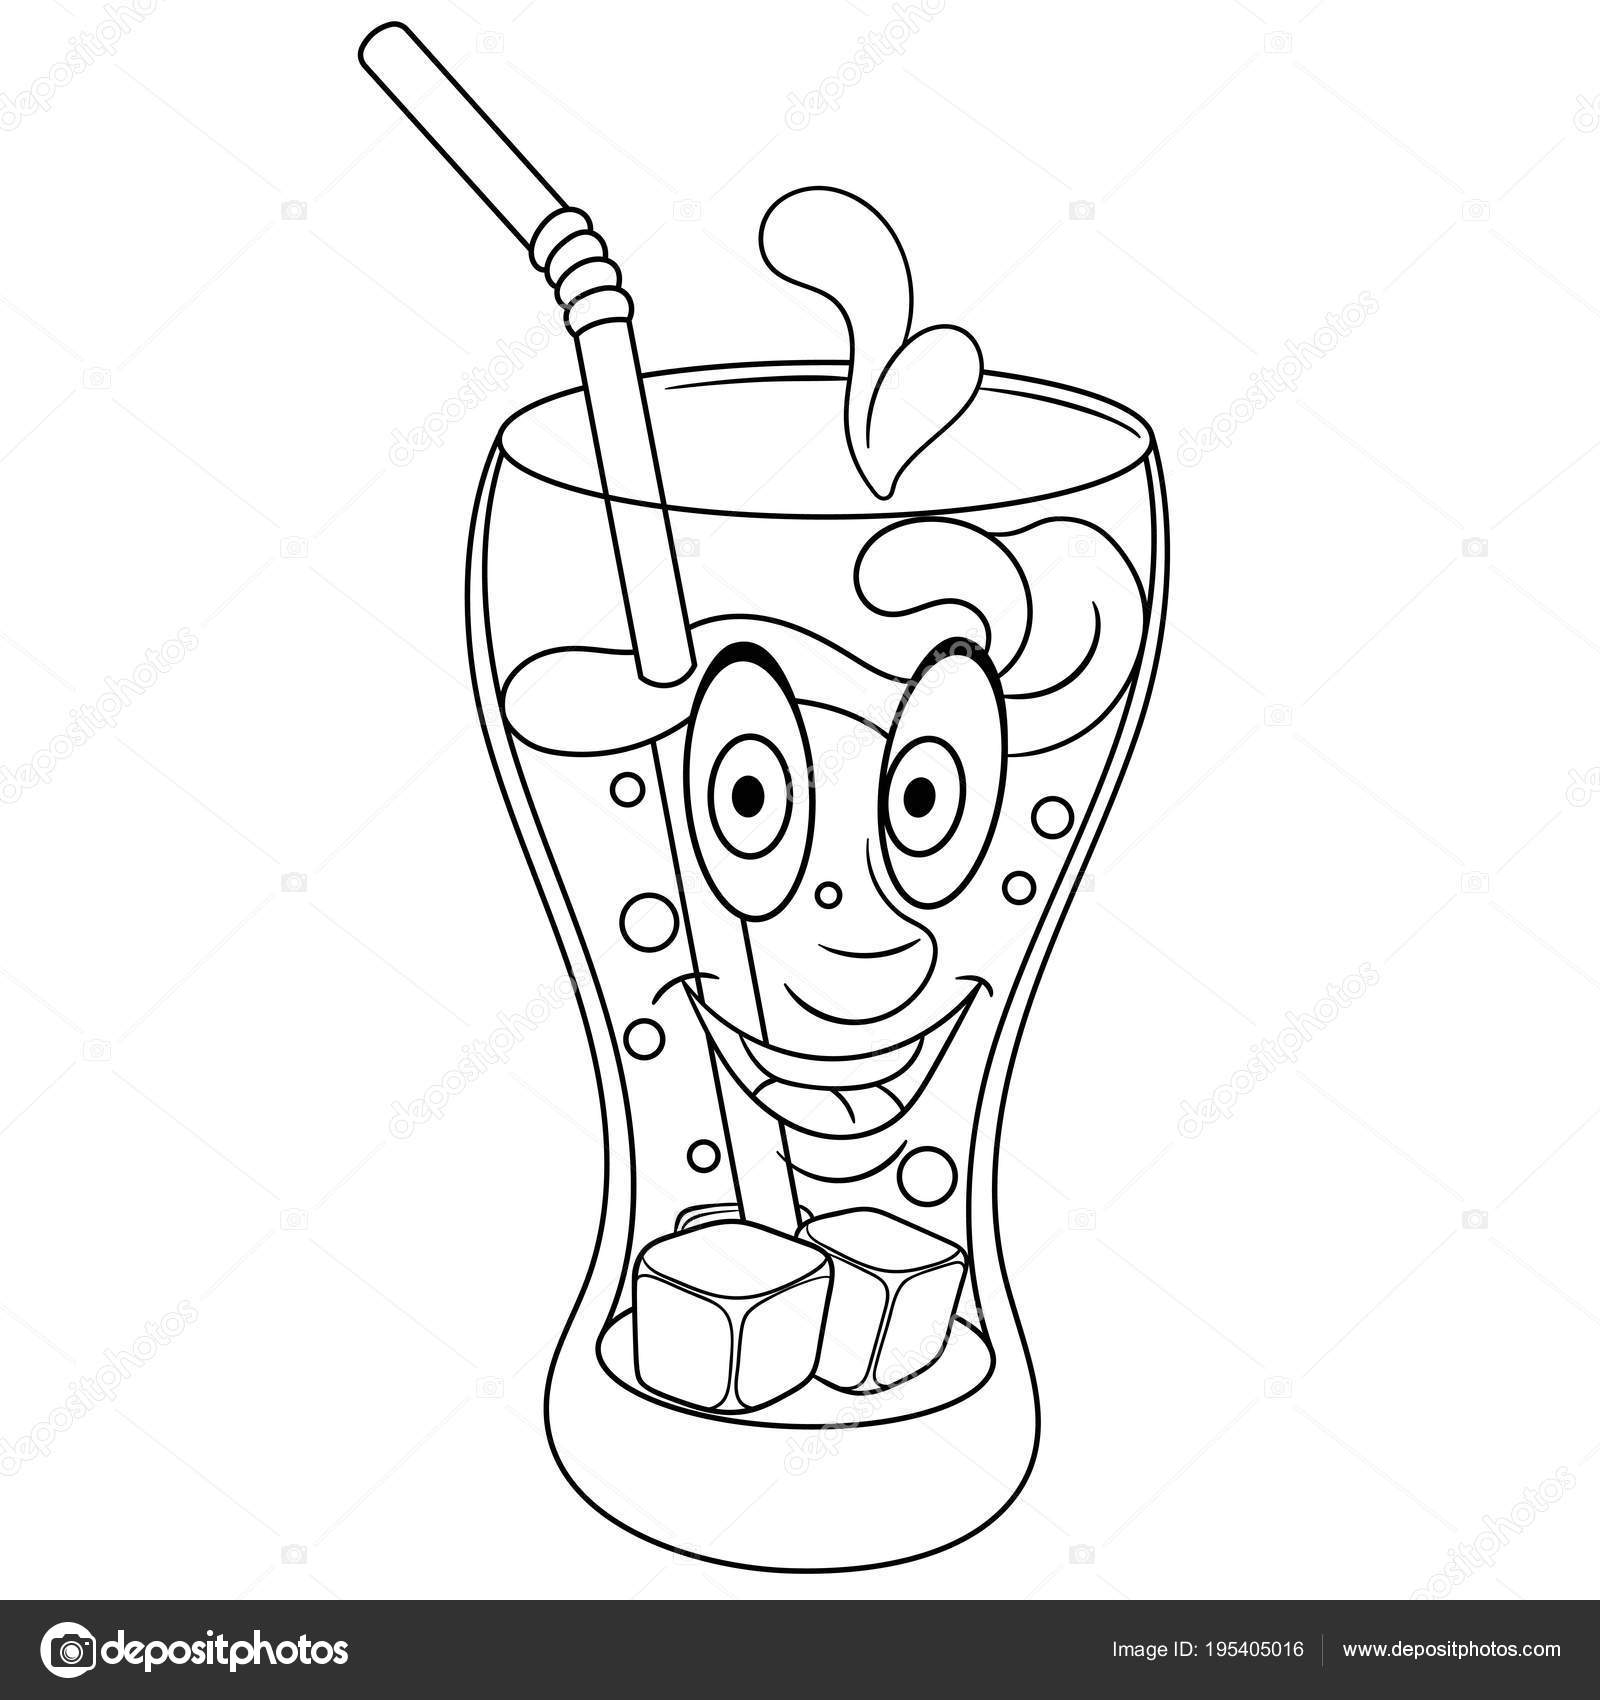 Coloring Book Coloring Page Colouring Picture Cola Cup Vector Image By C Sybirko Vector Stock 195405016